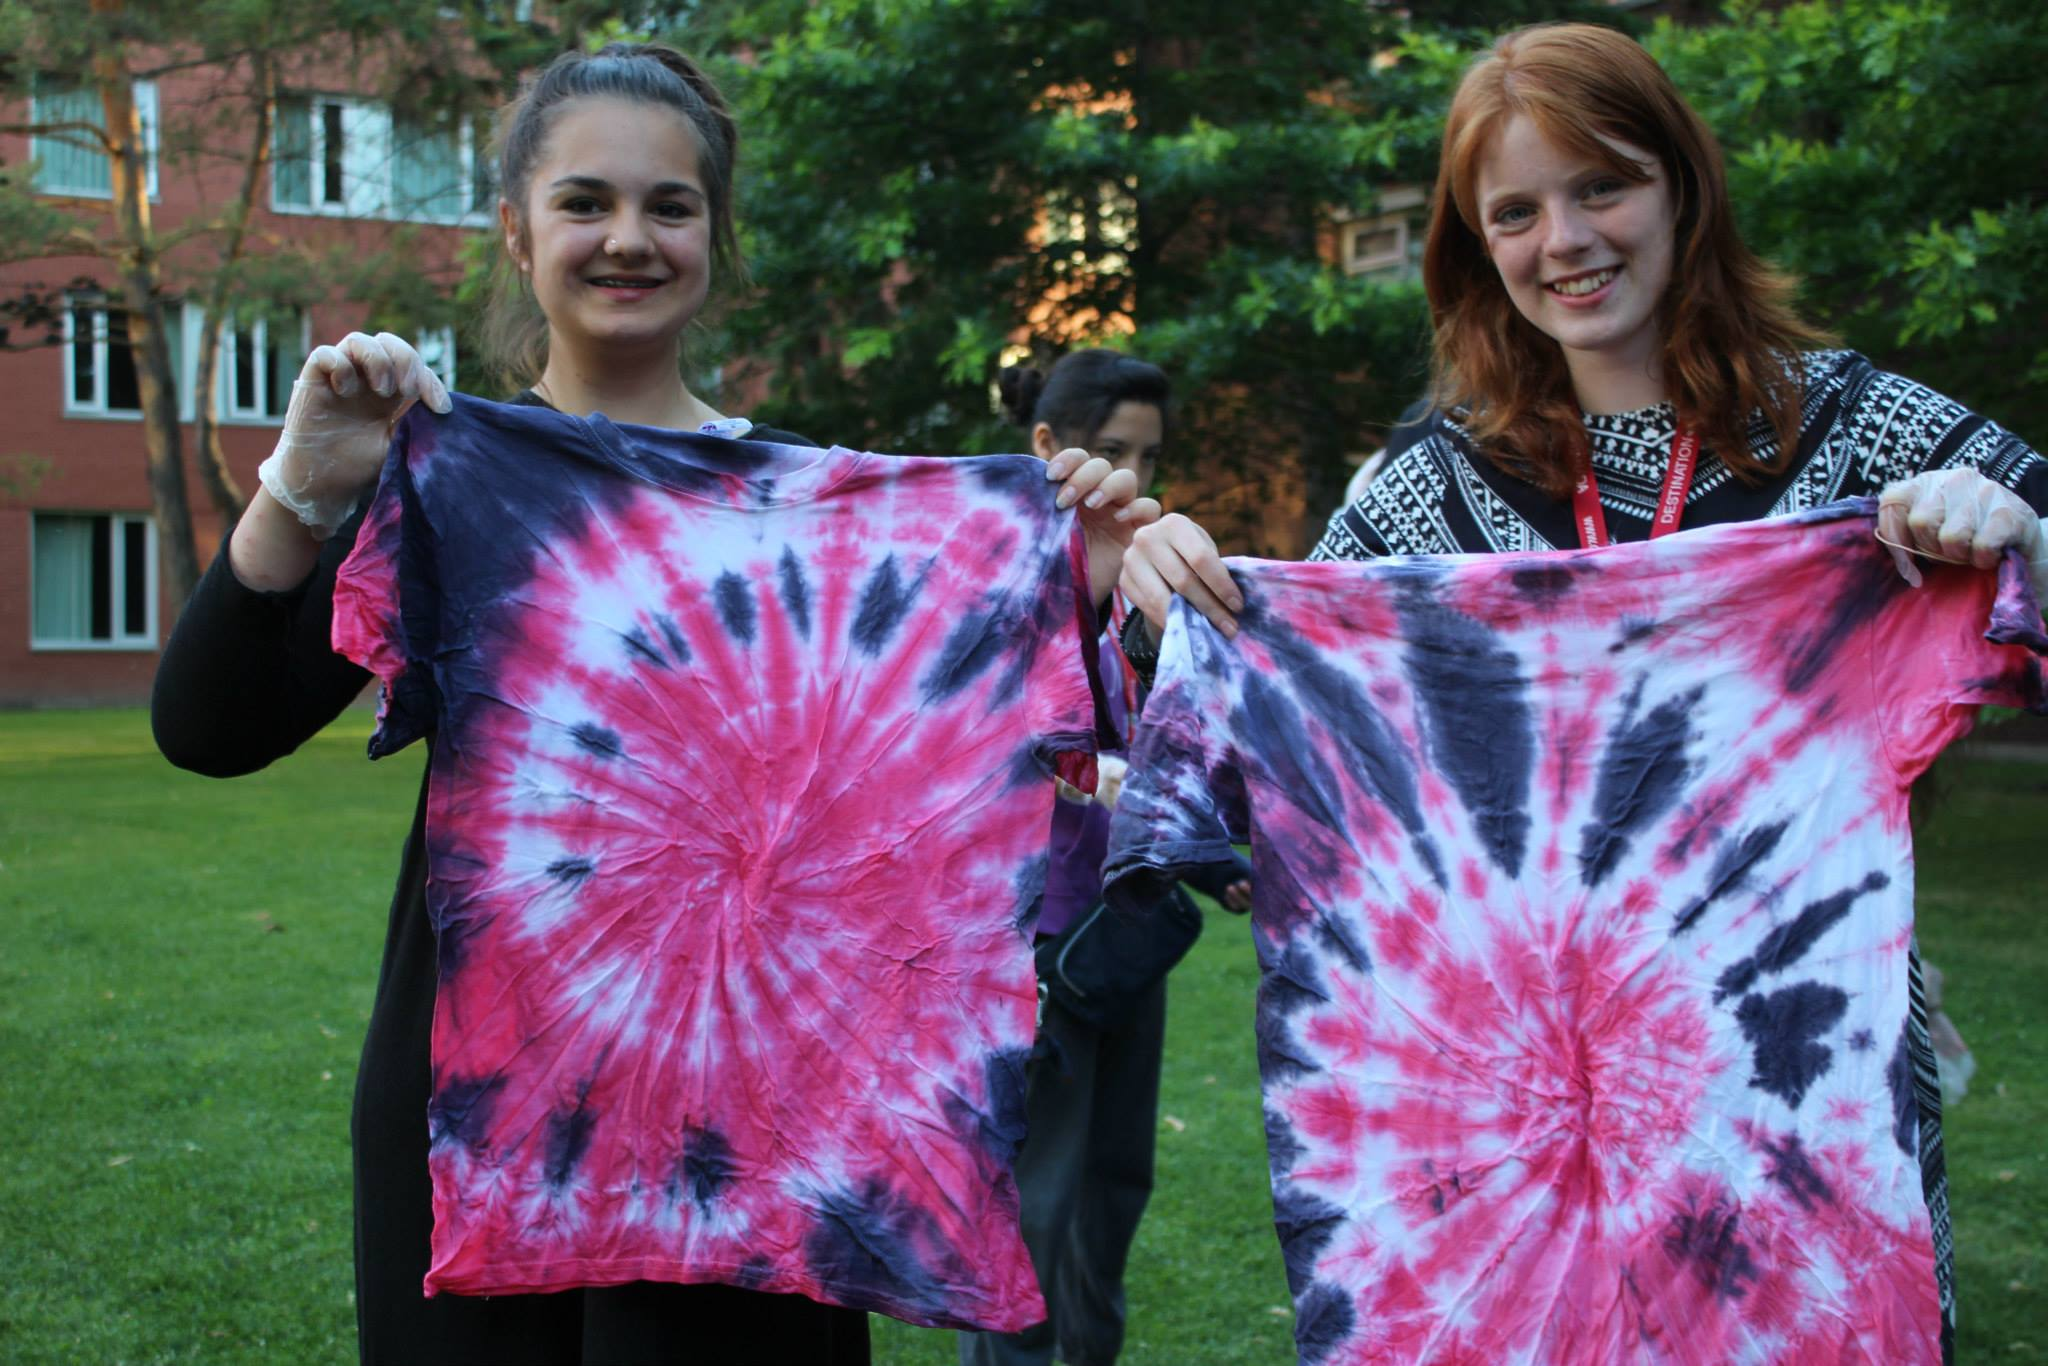 Kids tie dye their team colours as they take part in Destination Canada's Olympic activities